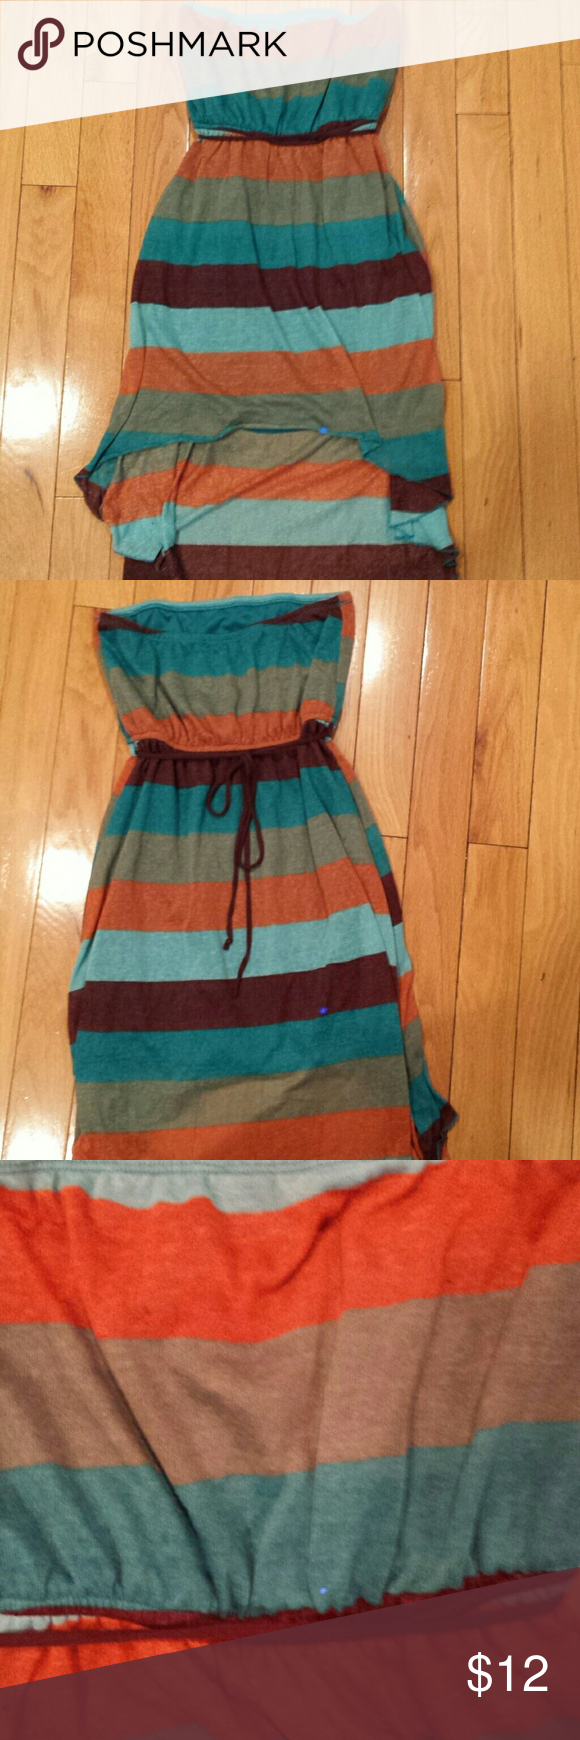 LOVE J Halter High Lo Summer Dress Size Medium Cotton and spandex material, super cute halter high low summer dress. Has a belt at waist that ties in the back. Very pretty colors turquoise and orange. No rips tears or stains. Smoke free and pet free home. I take offers and give bundle discounts. love j Dresses High Low